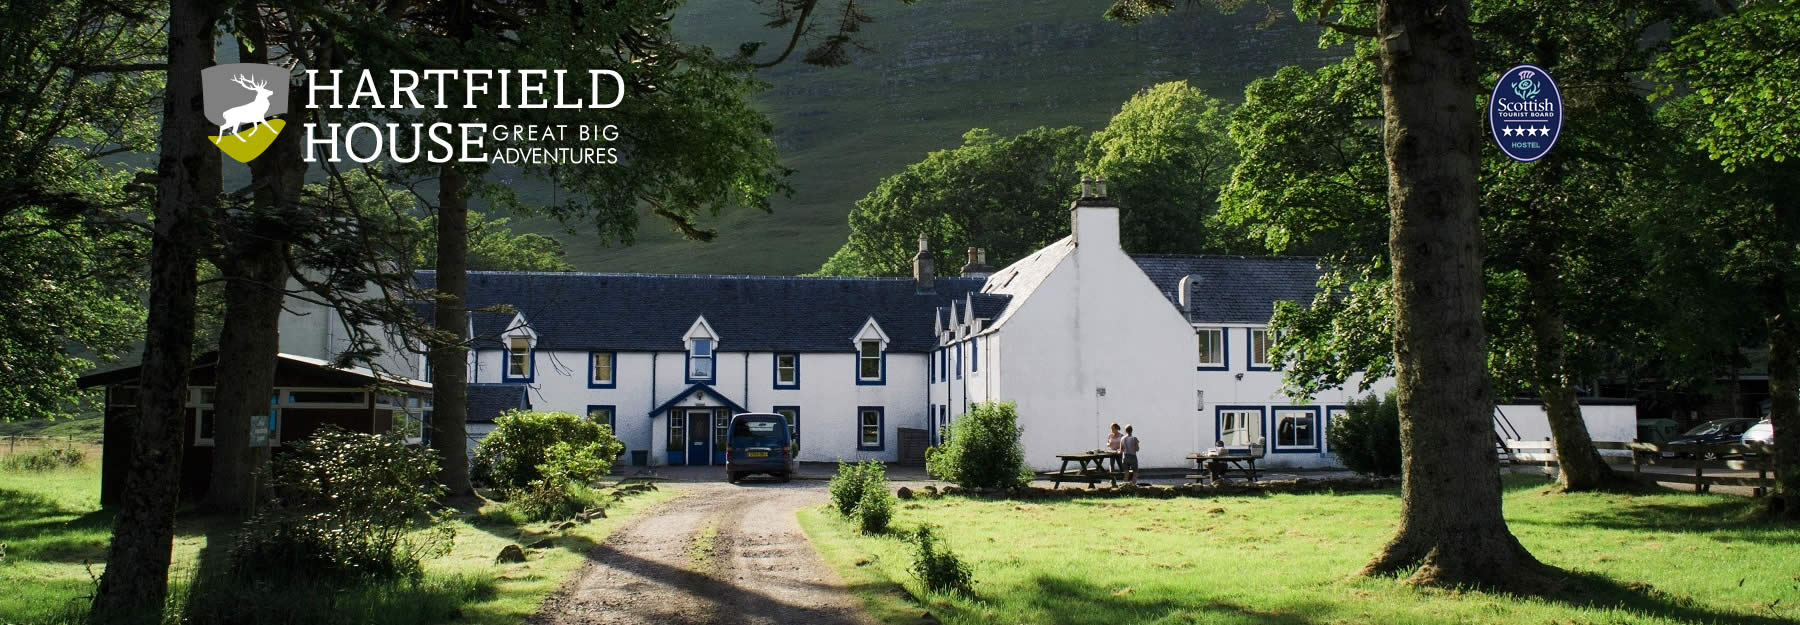 applecross hostel